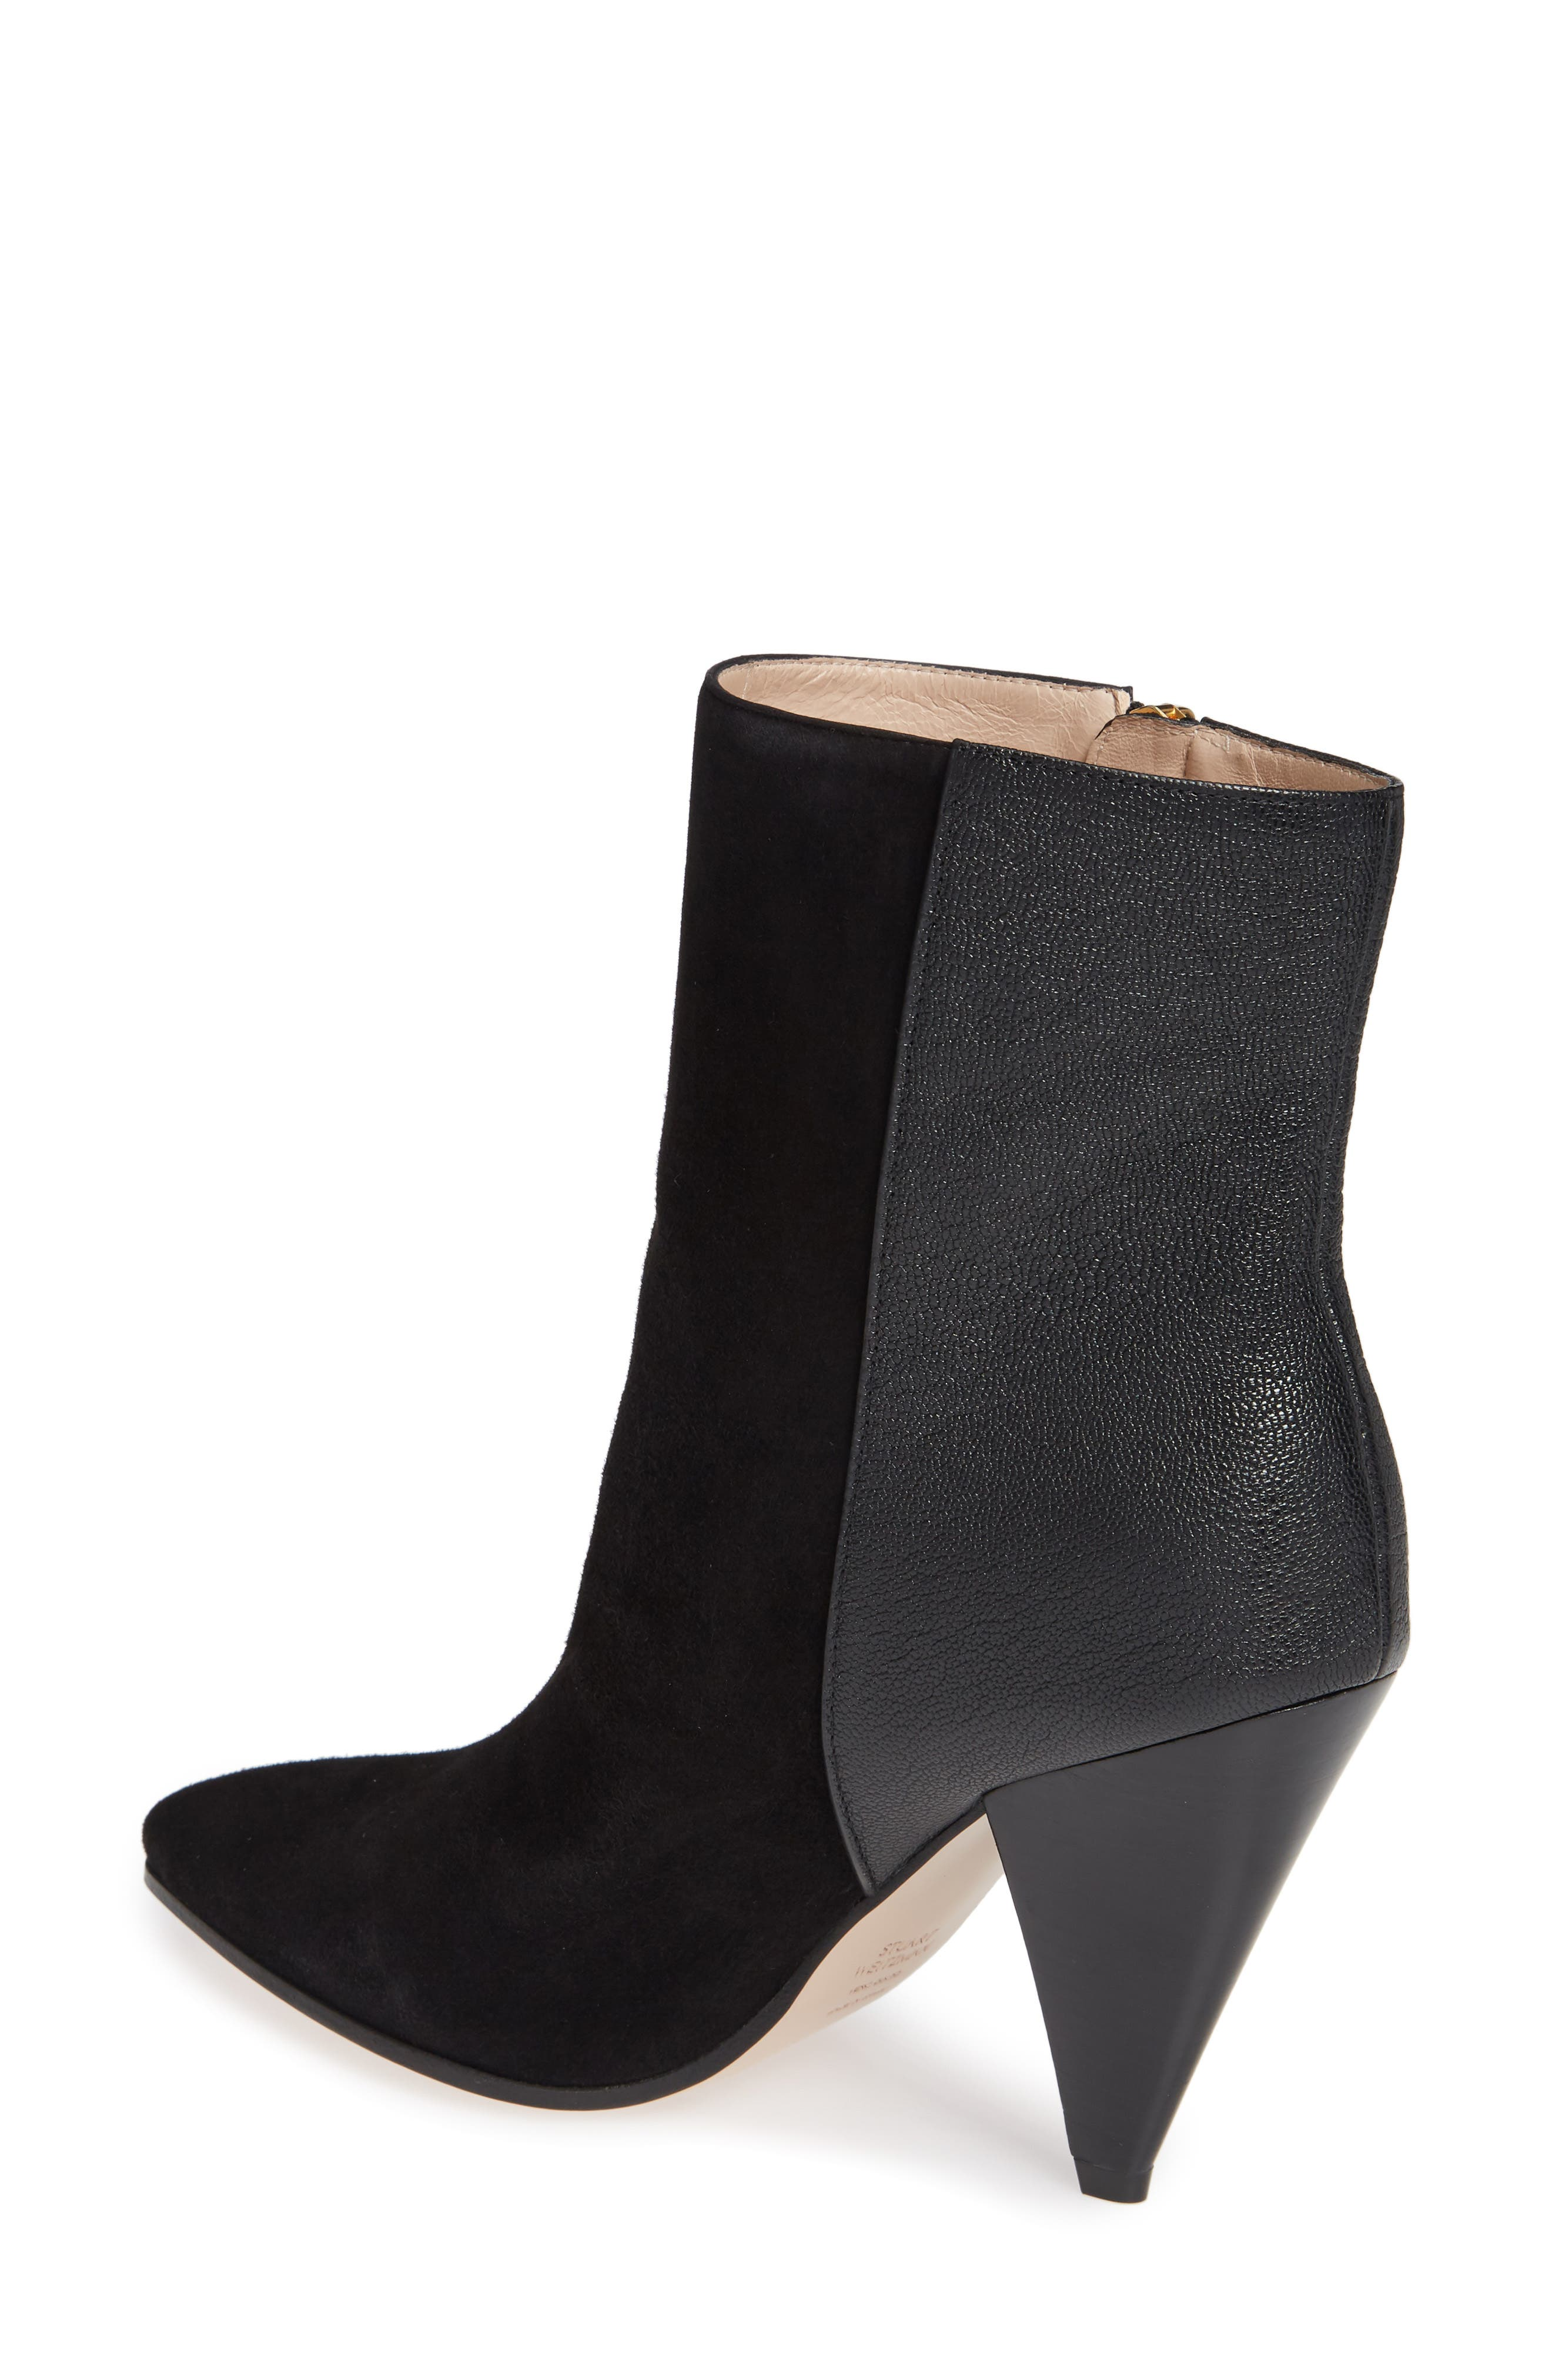 Cone Heel Bootie,                             Alternate thumbnail 2, color,                             PITCH BLACK COMBO SUEDE